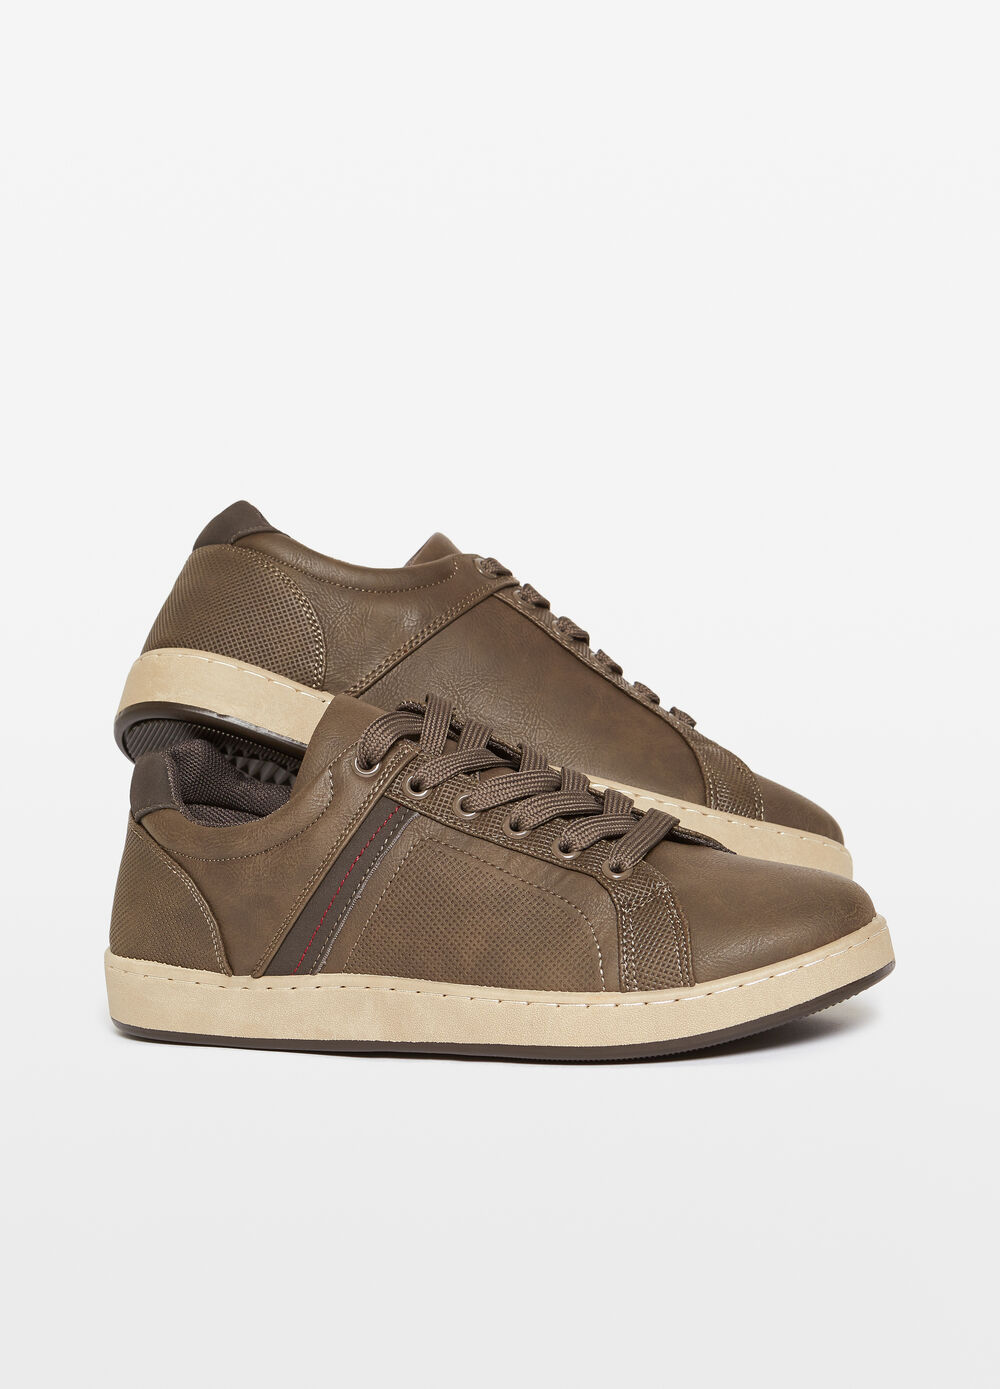 Solid colour sneakers with contrasting sole